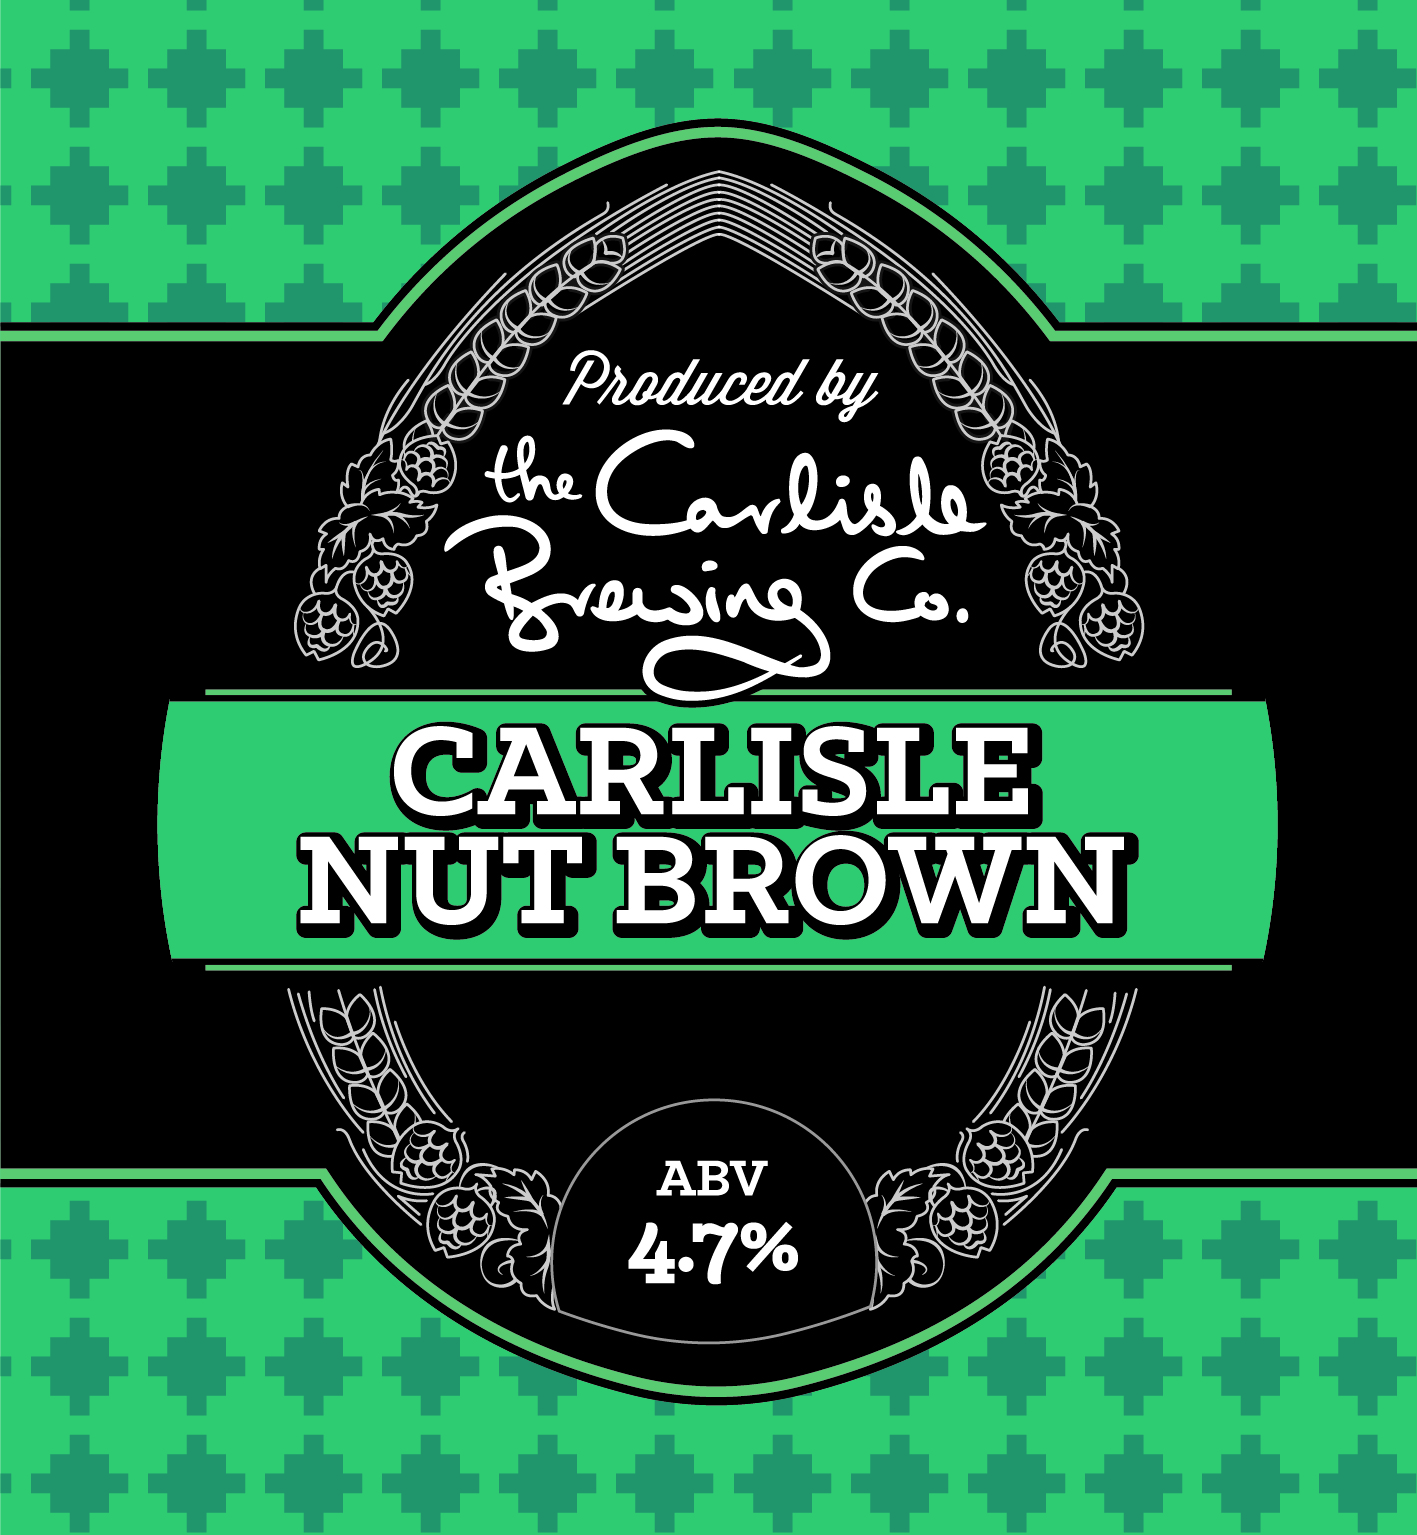 Carlisle Nut Brown